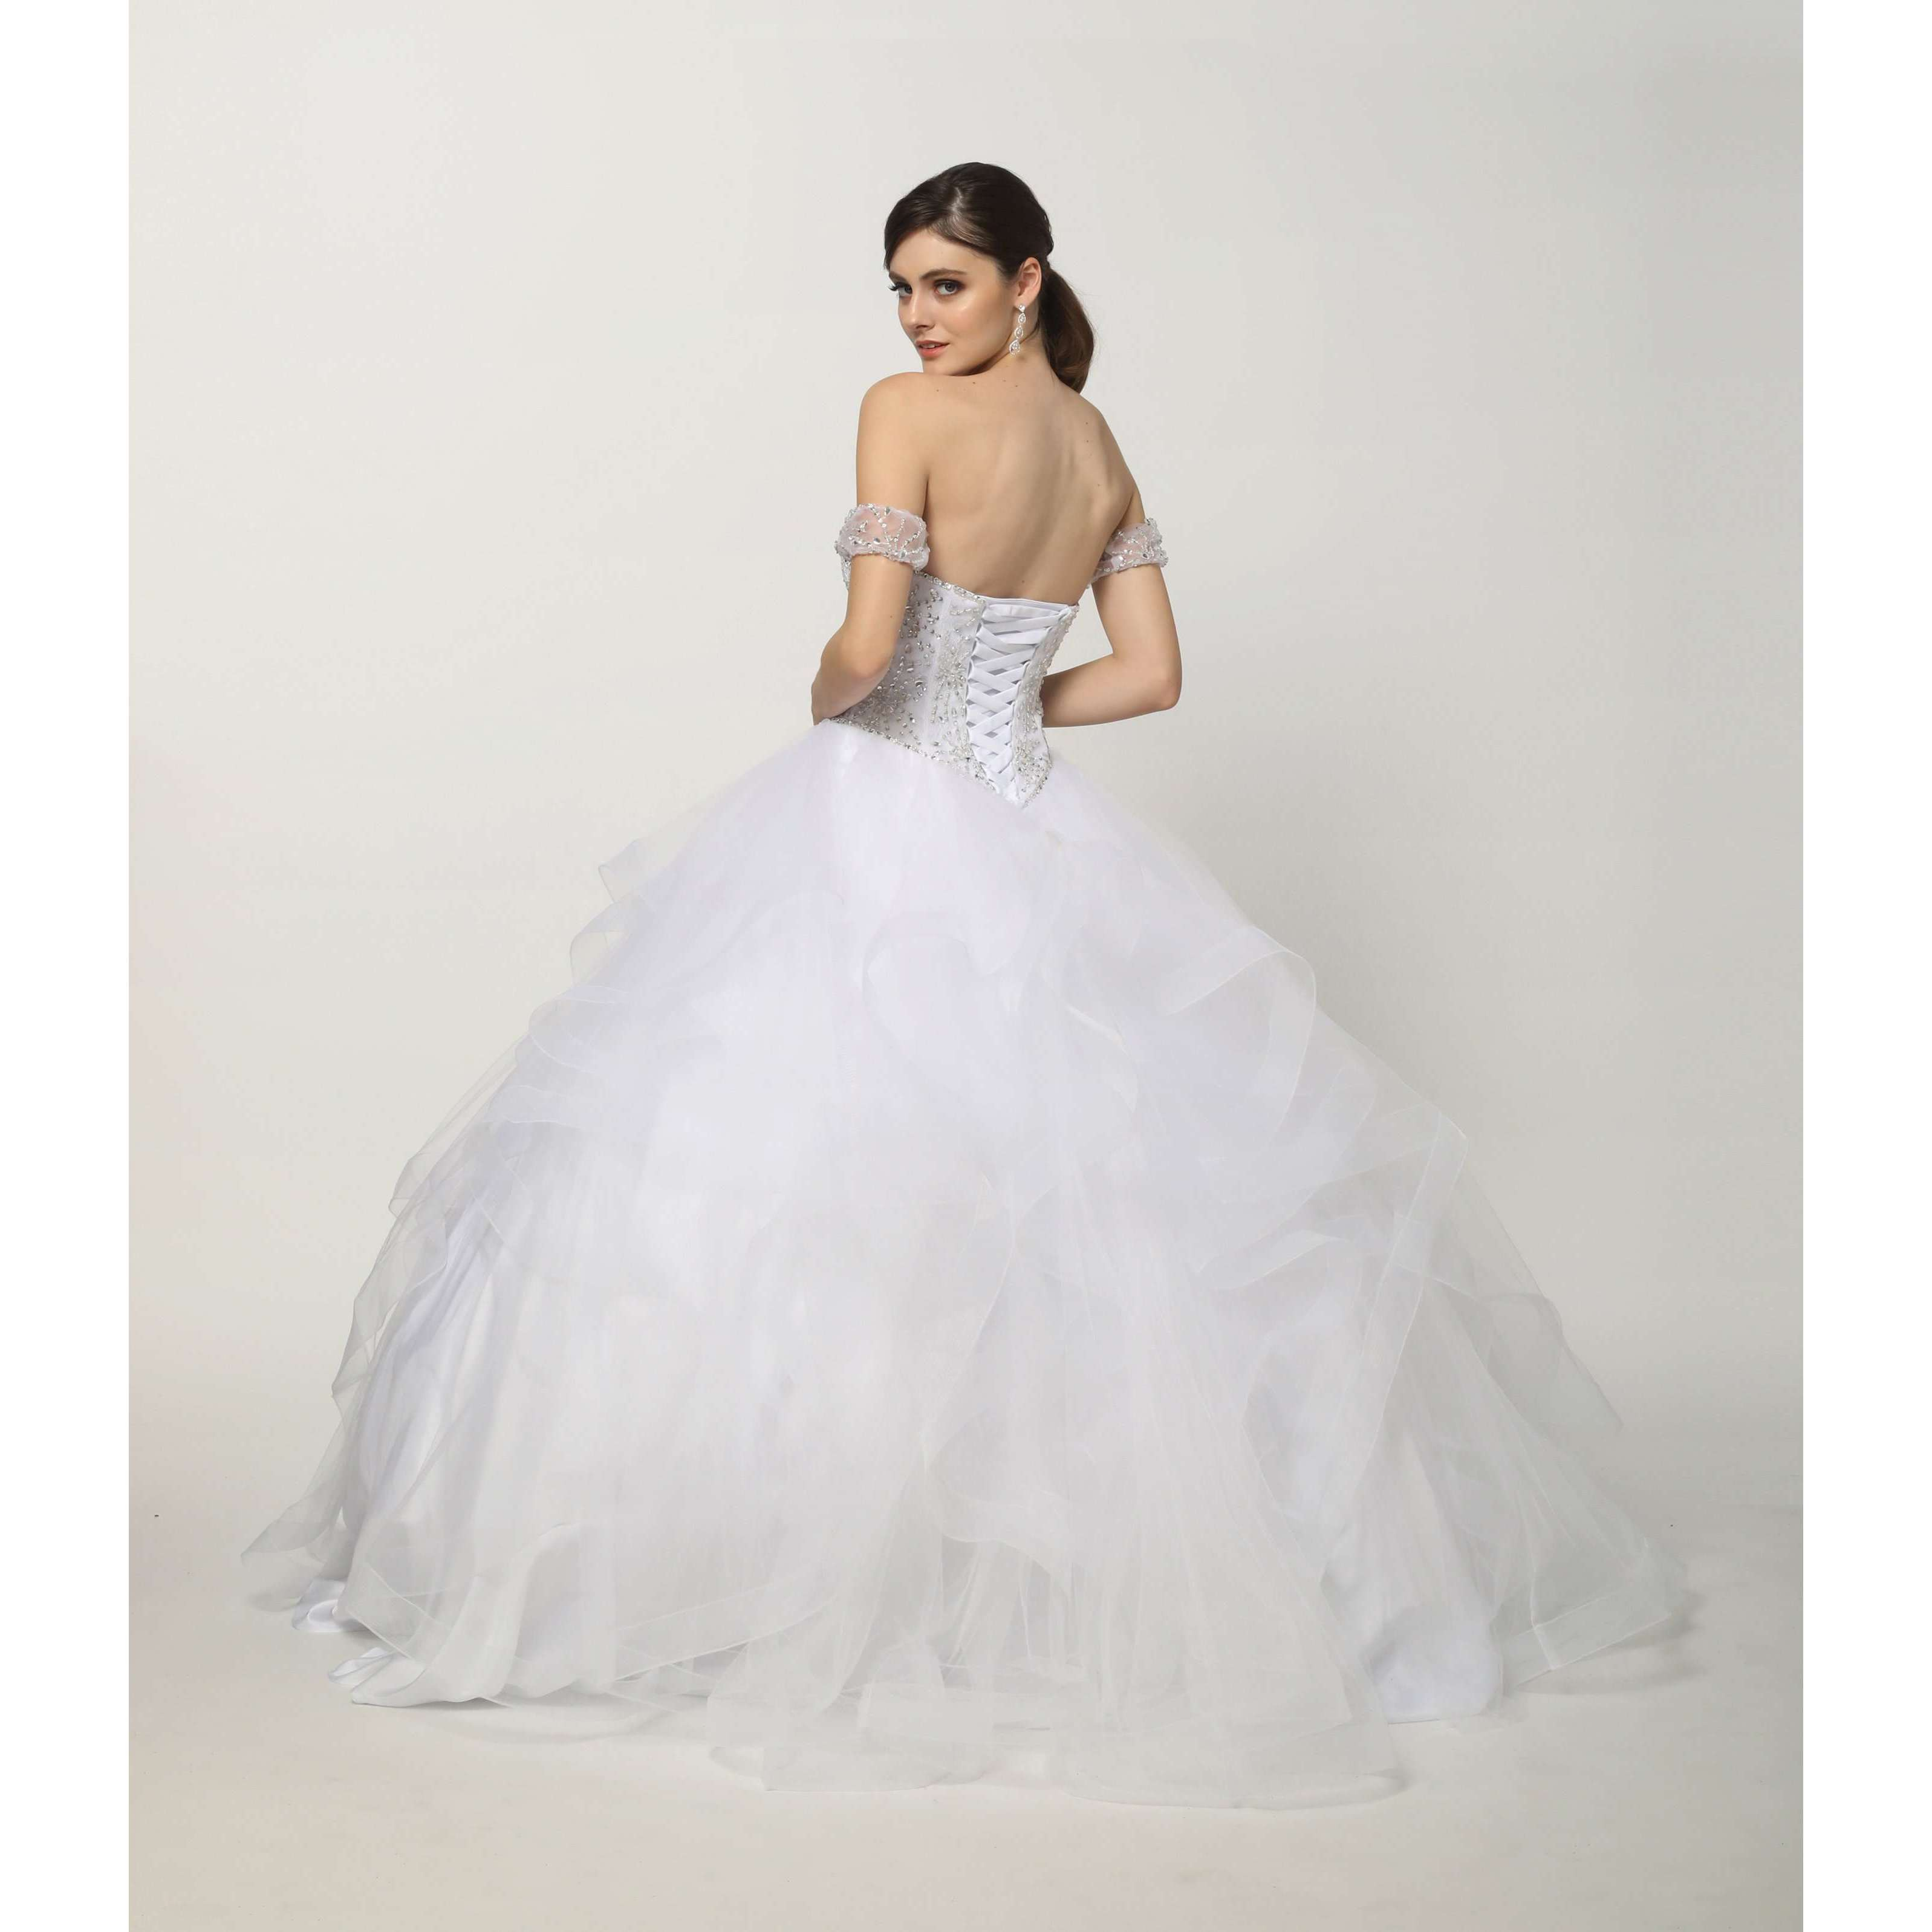 Beaded Lace Bodice on a Flounced Tulle Ball Gown with Detachable Sleeves 1425W - Julietdresses